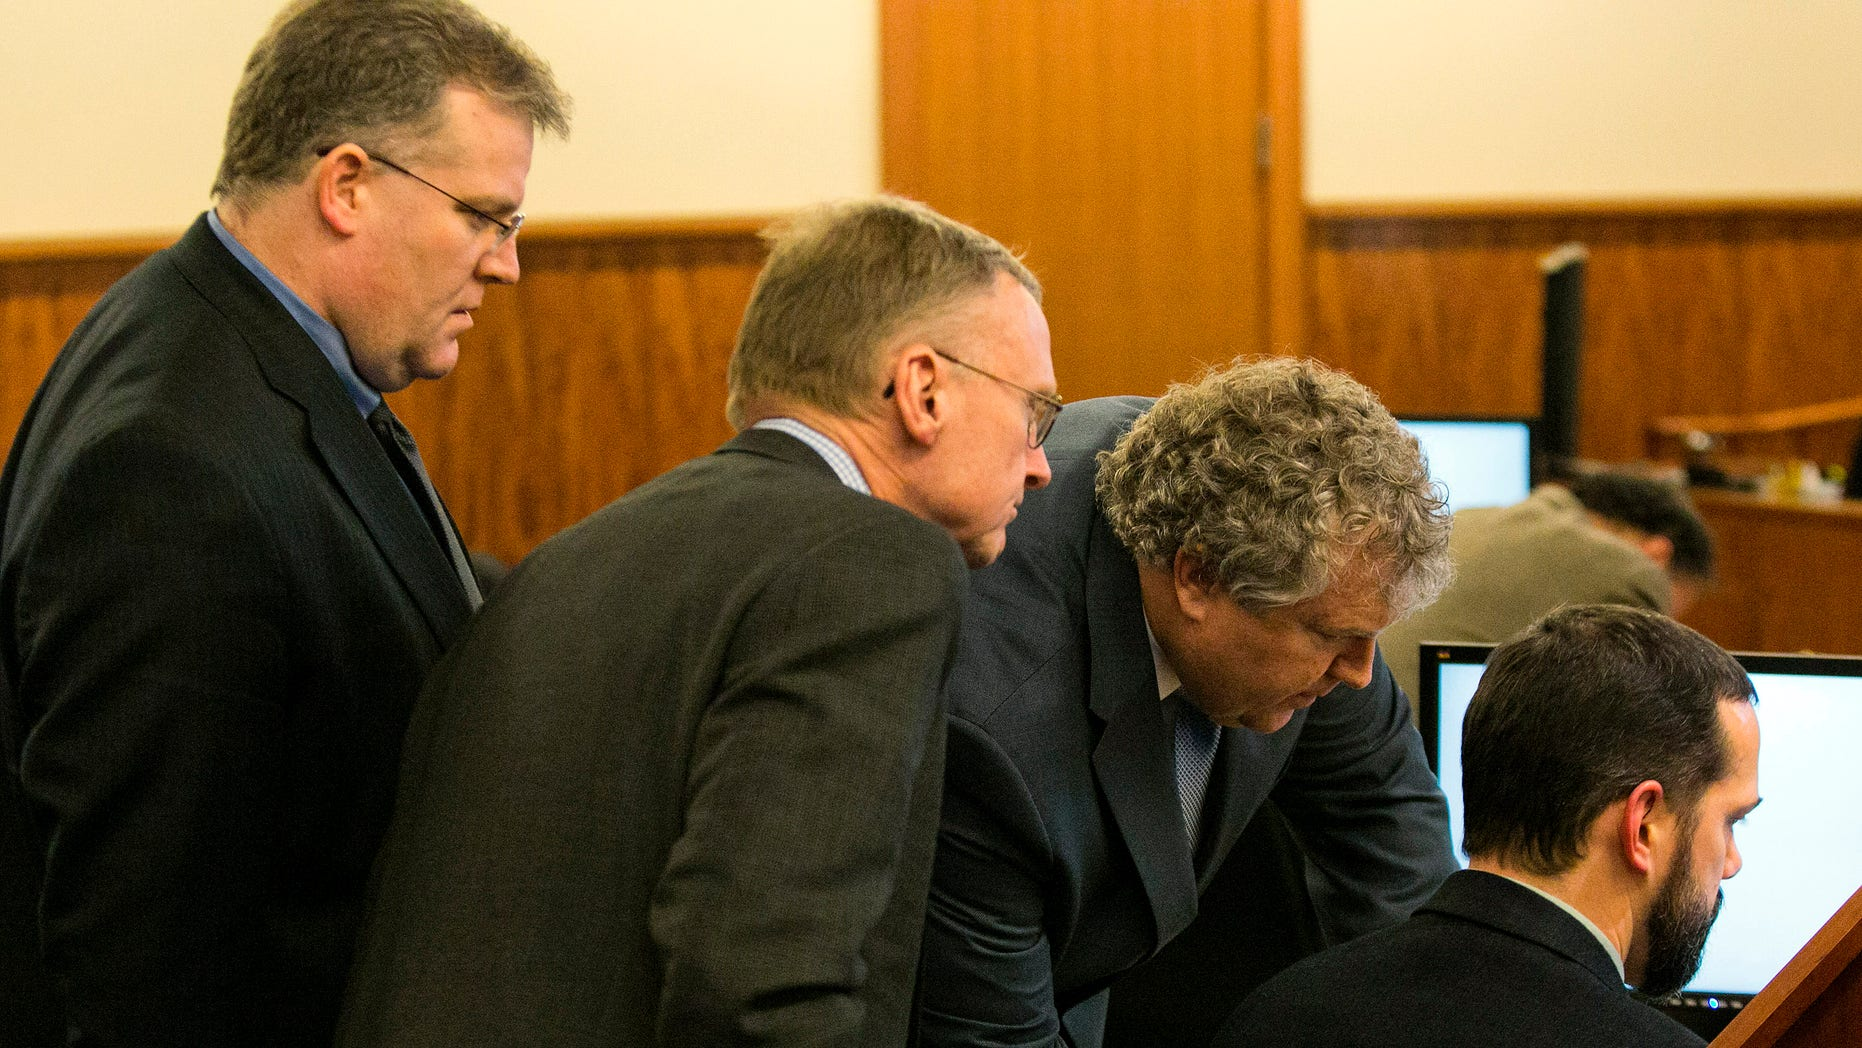 Prosecution and defense teams during the murder trial for Aaron Hernandez in Fall River, Mass., Feb. 20, 2015.